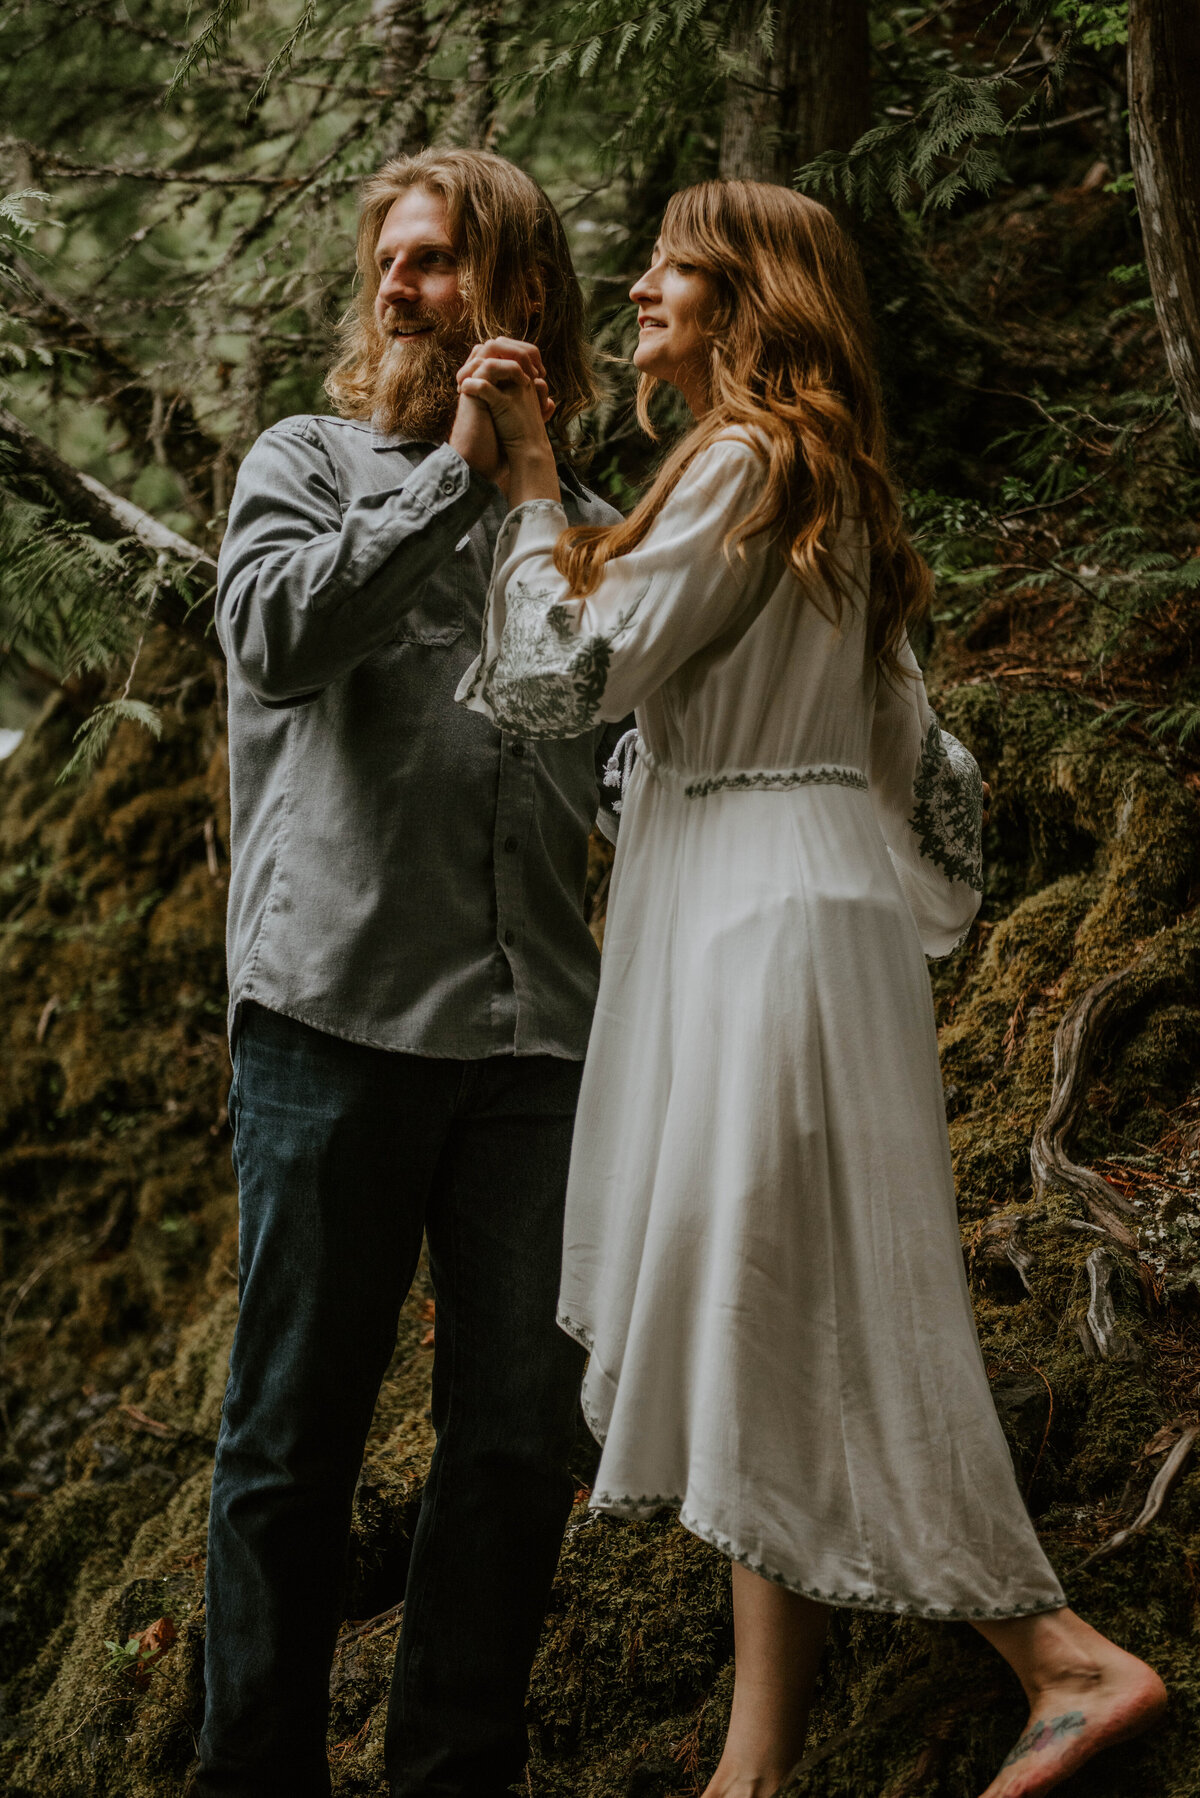 sahalie-falls-summer-oregon-photoshoot-adventure-photographer-bend-couple-forest-outfits-elopement-wedding8168